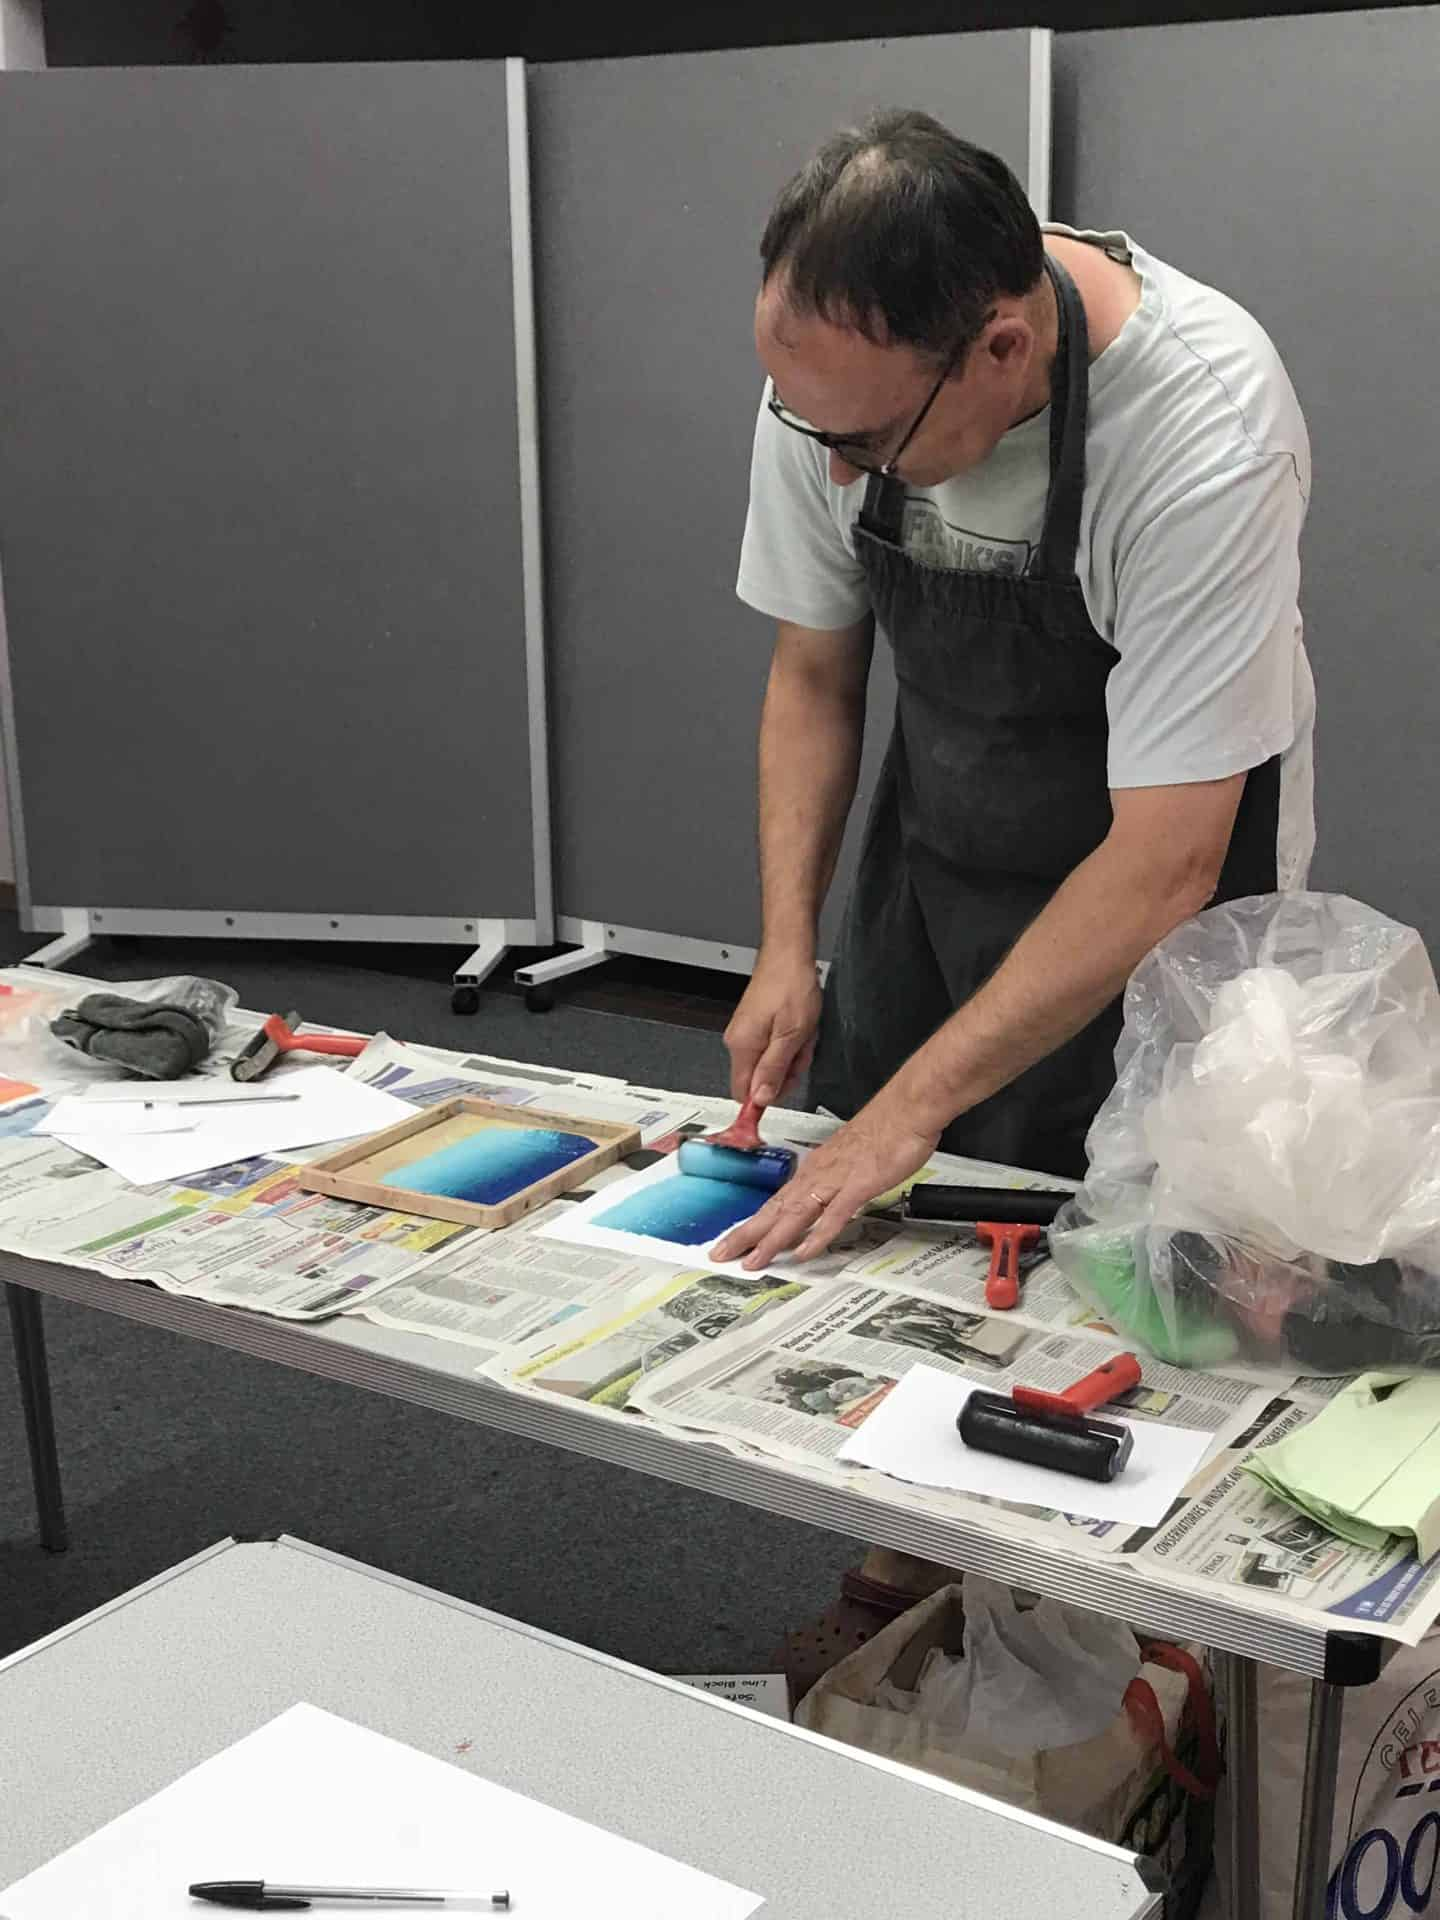 The artist demonstrating printing at MK Library